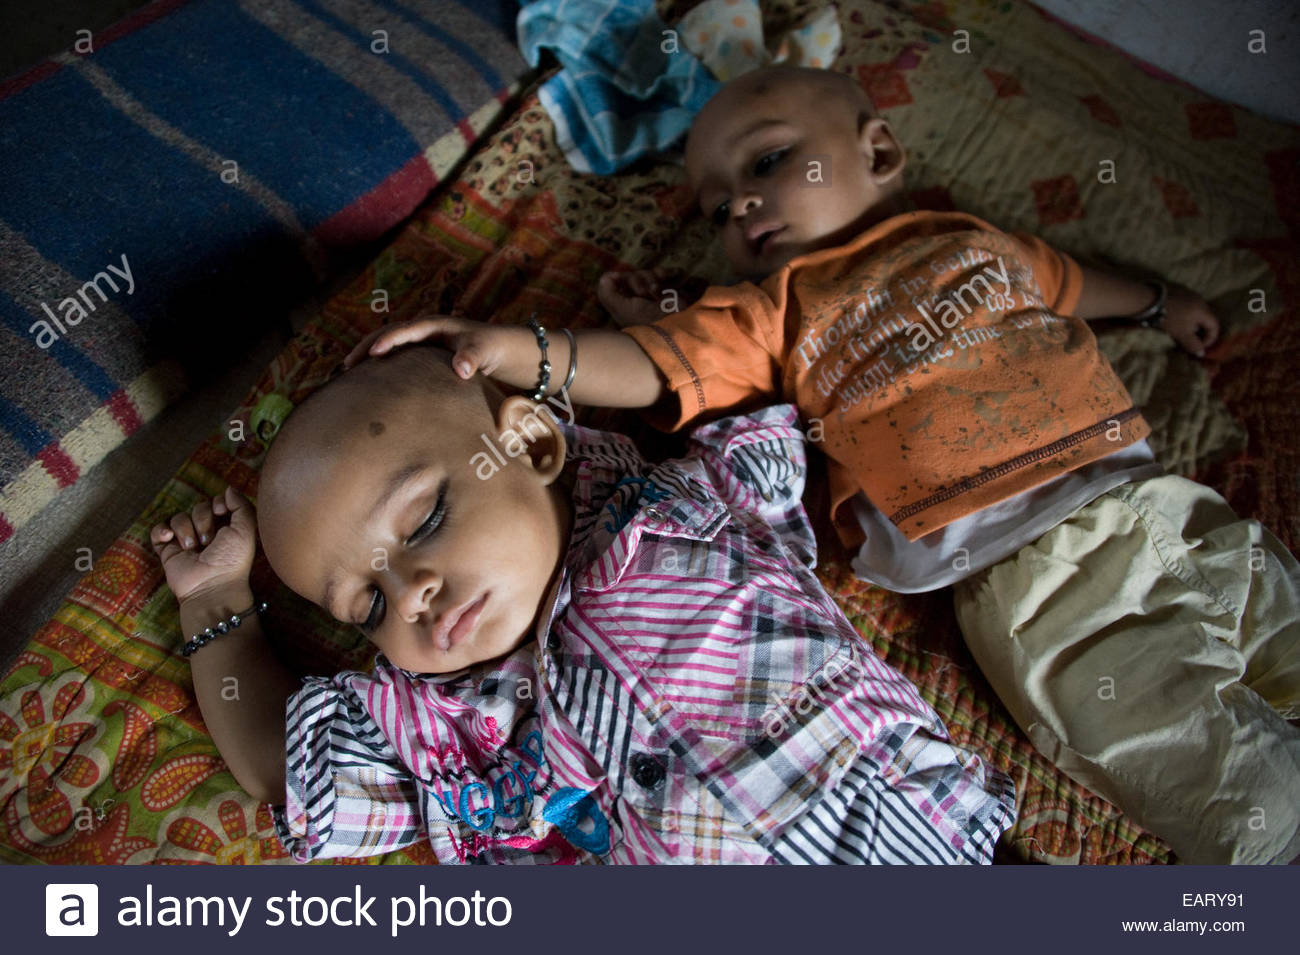 A nine month old twin touches his sleeping brother. - Stock Image